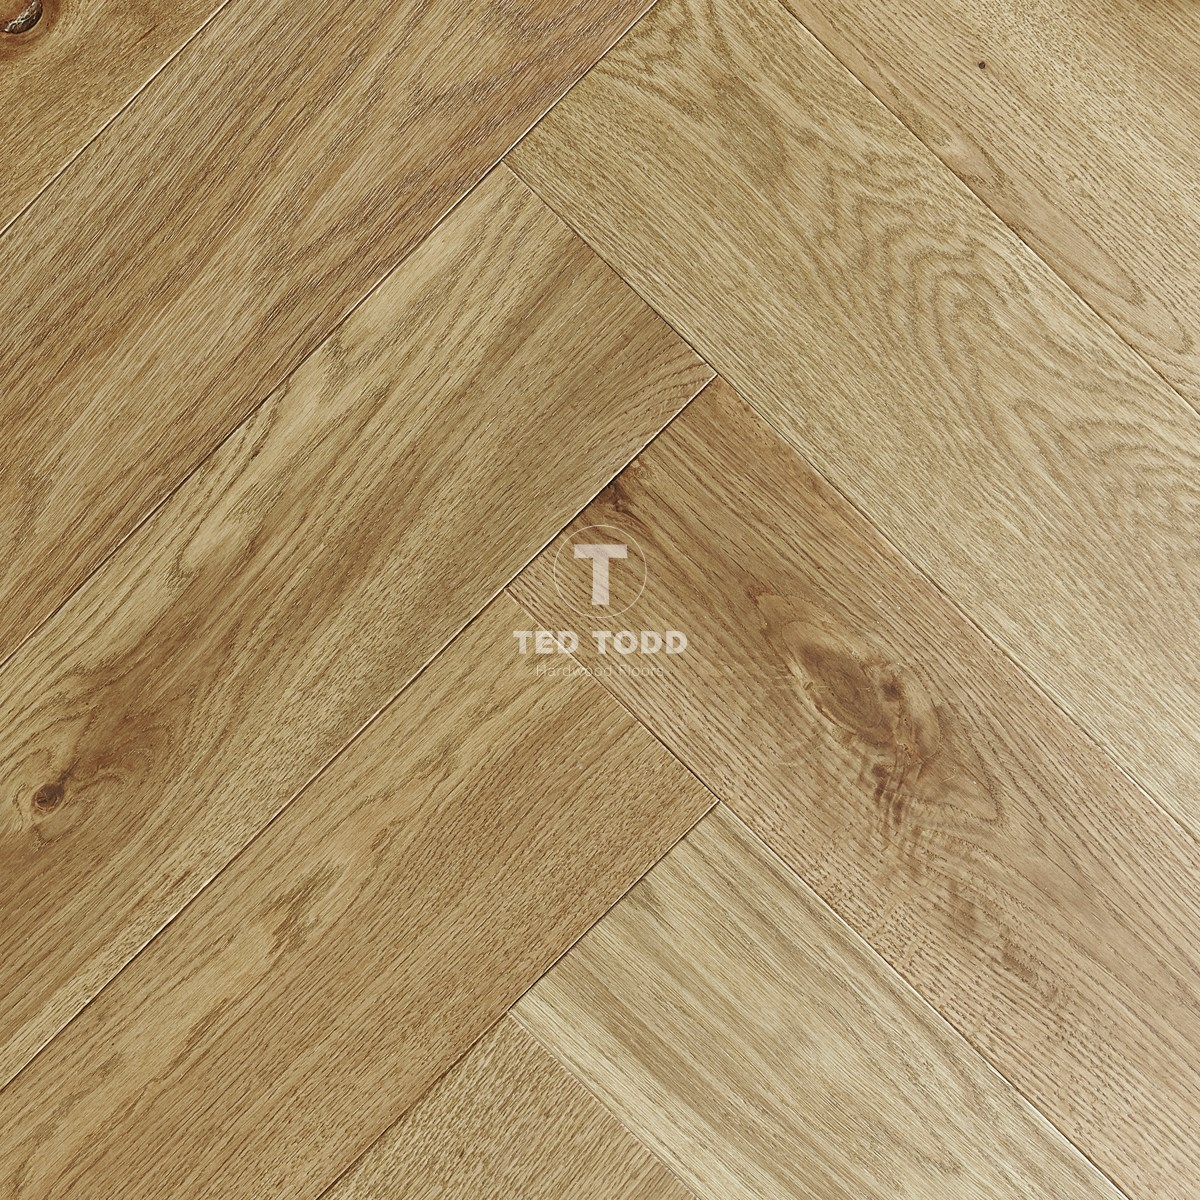 Engineered wood flooring uk edinburgh glasgow london for Cheap engineered wood flooring